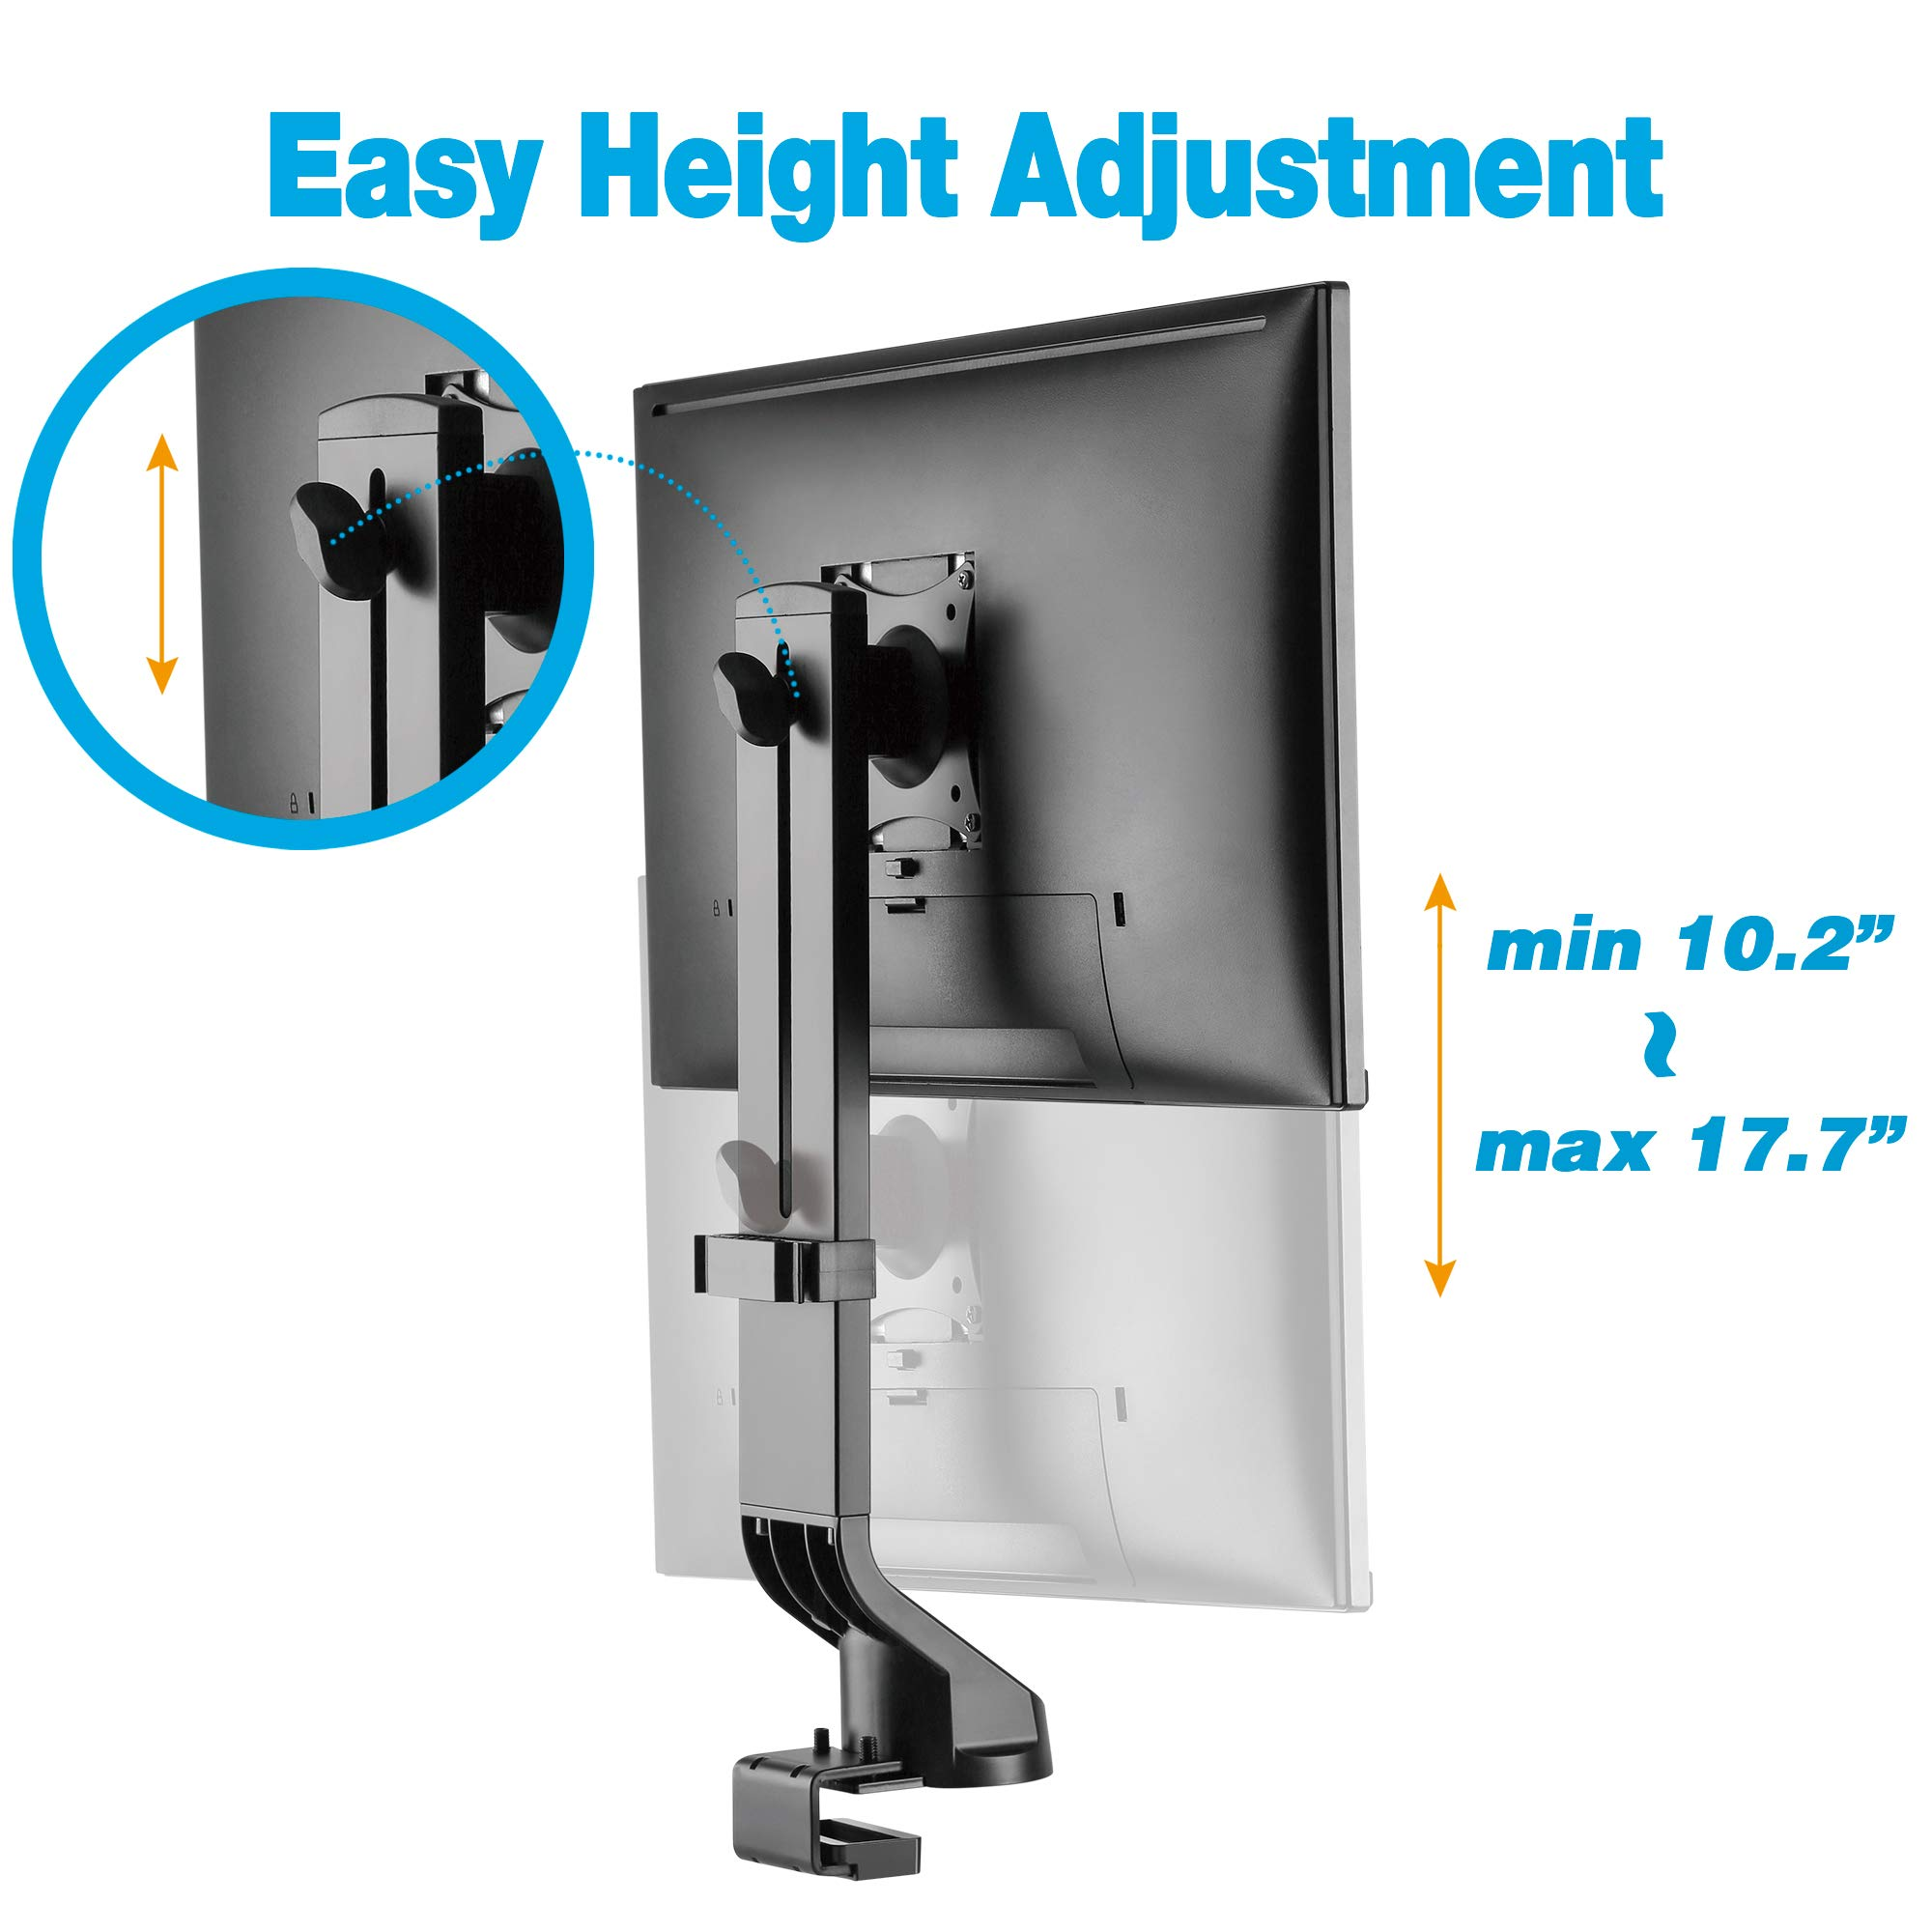 AVLT-Power Single Monitor Mount for Standing Desk Workstation - Extra Height Adjustment Range - Heavy Duty - Holds 17'' to 32'' Screens, up to 17.6 lbs, VESA 75x75mm 100x100mm by AVLT-Power (Image #2)